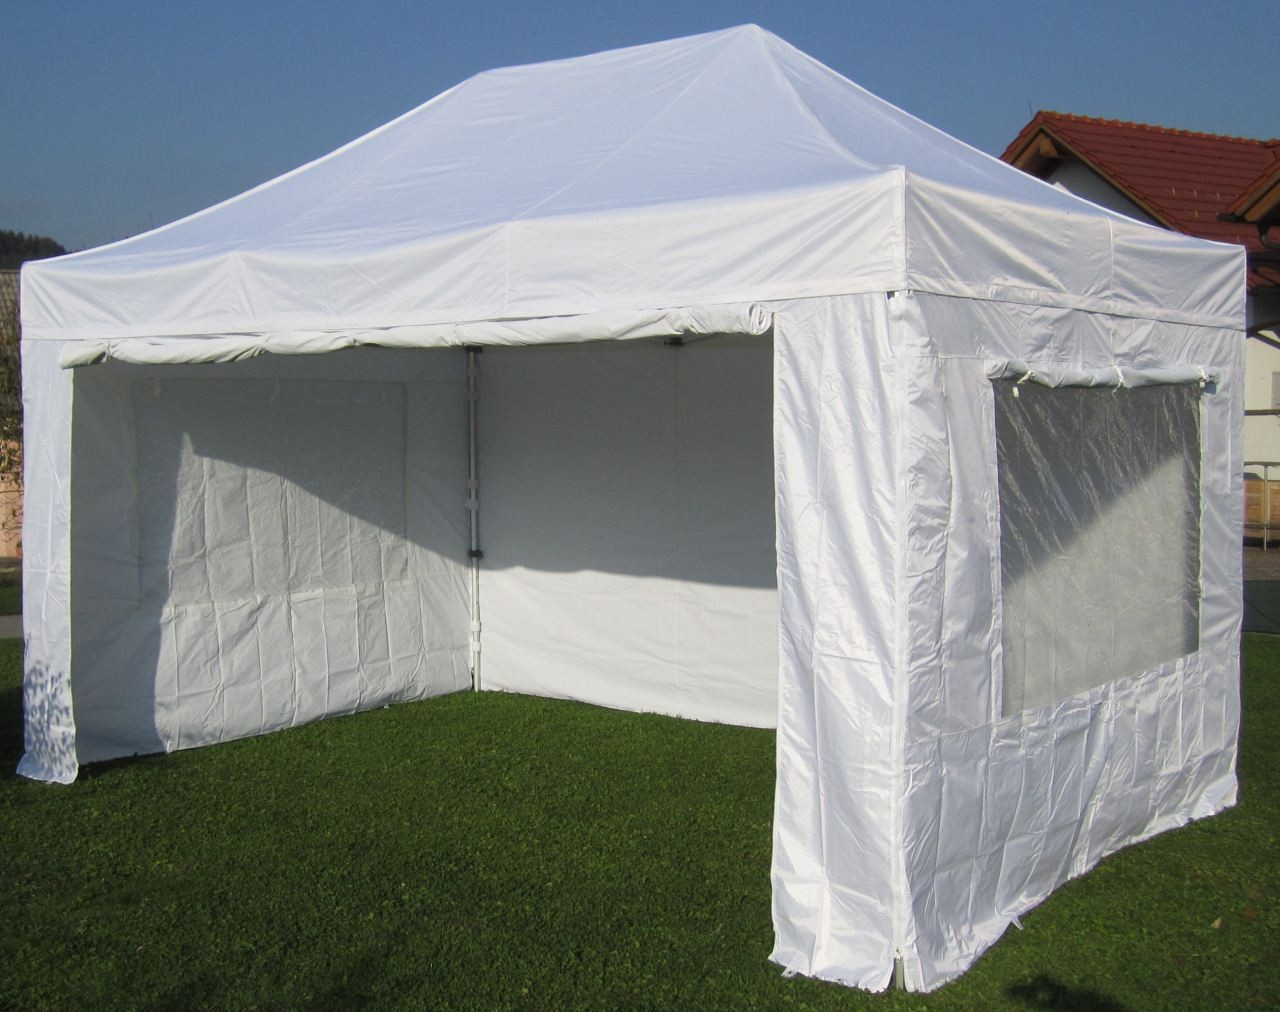 alu profi faltzelt pavillion marktzelt tent 3x4 5m 40mm hex feuerfeste planen ebay. Black Bedroom Furniture Sets. Home Design Ideas